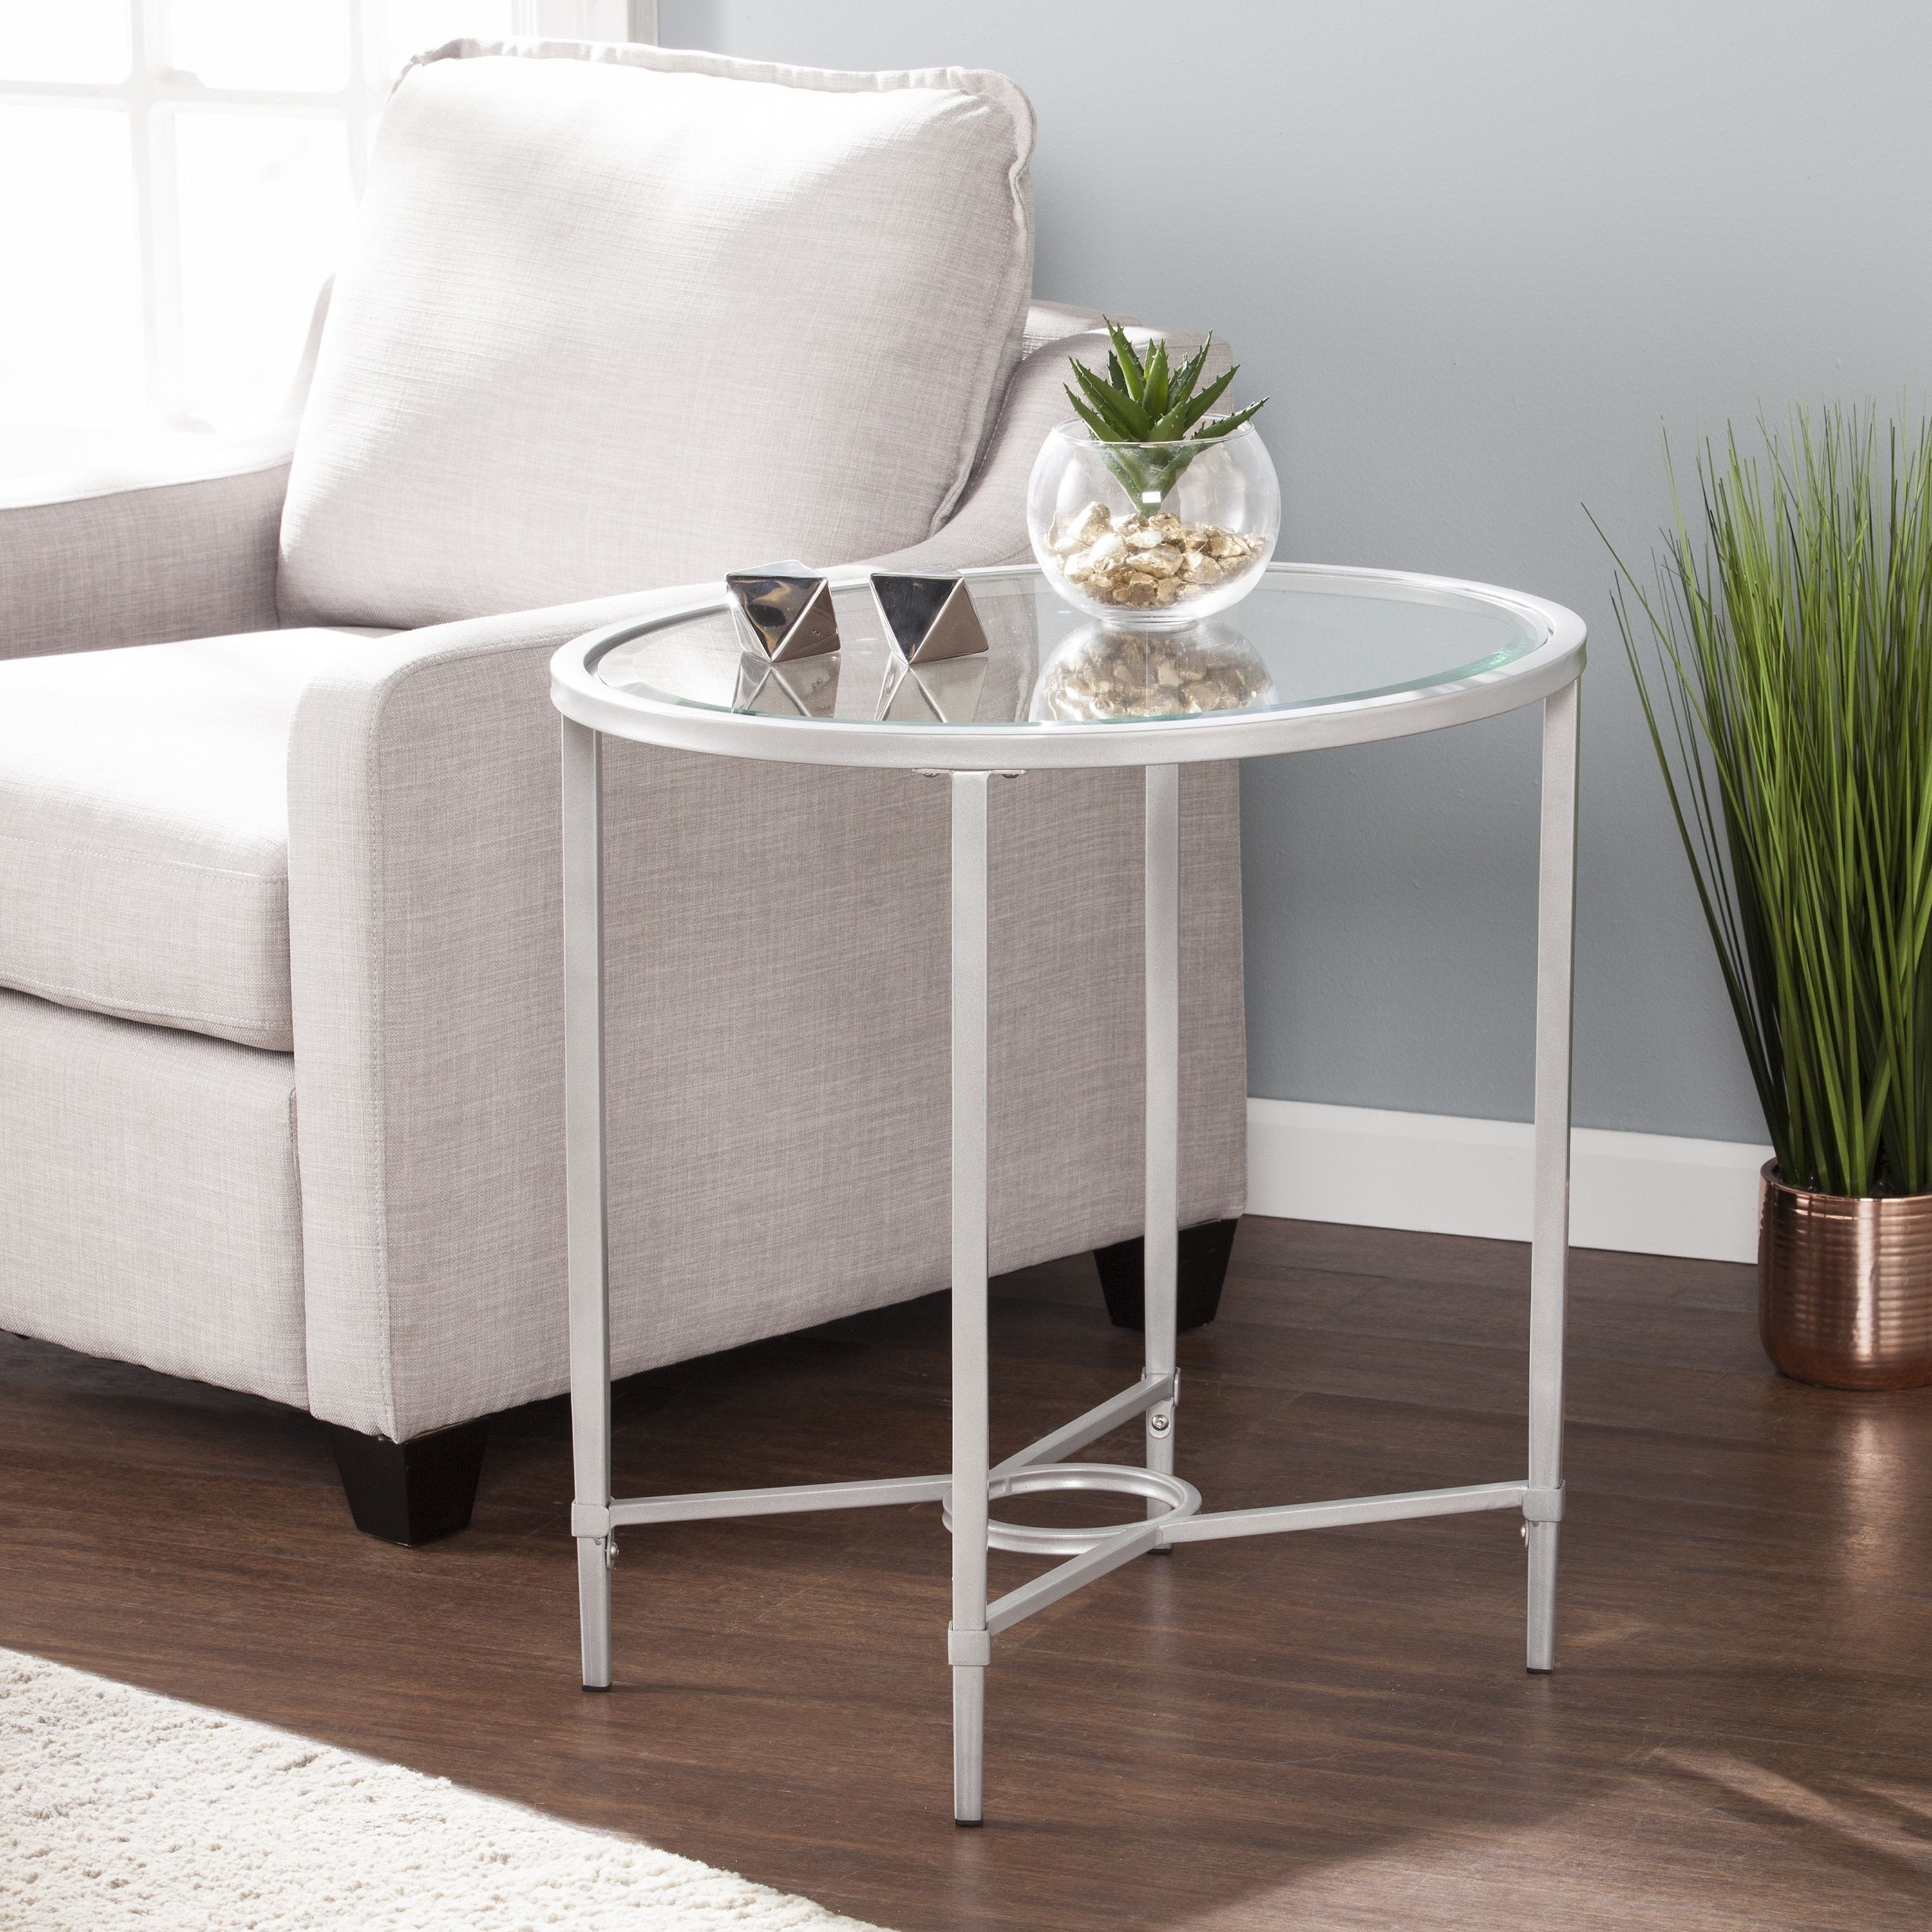 harper blvd quaker metal glass oval side table silver chrome accent console sofa with shelf purple chair plastic covers laminate floor door threshold bassett dining chairs gold